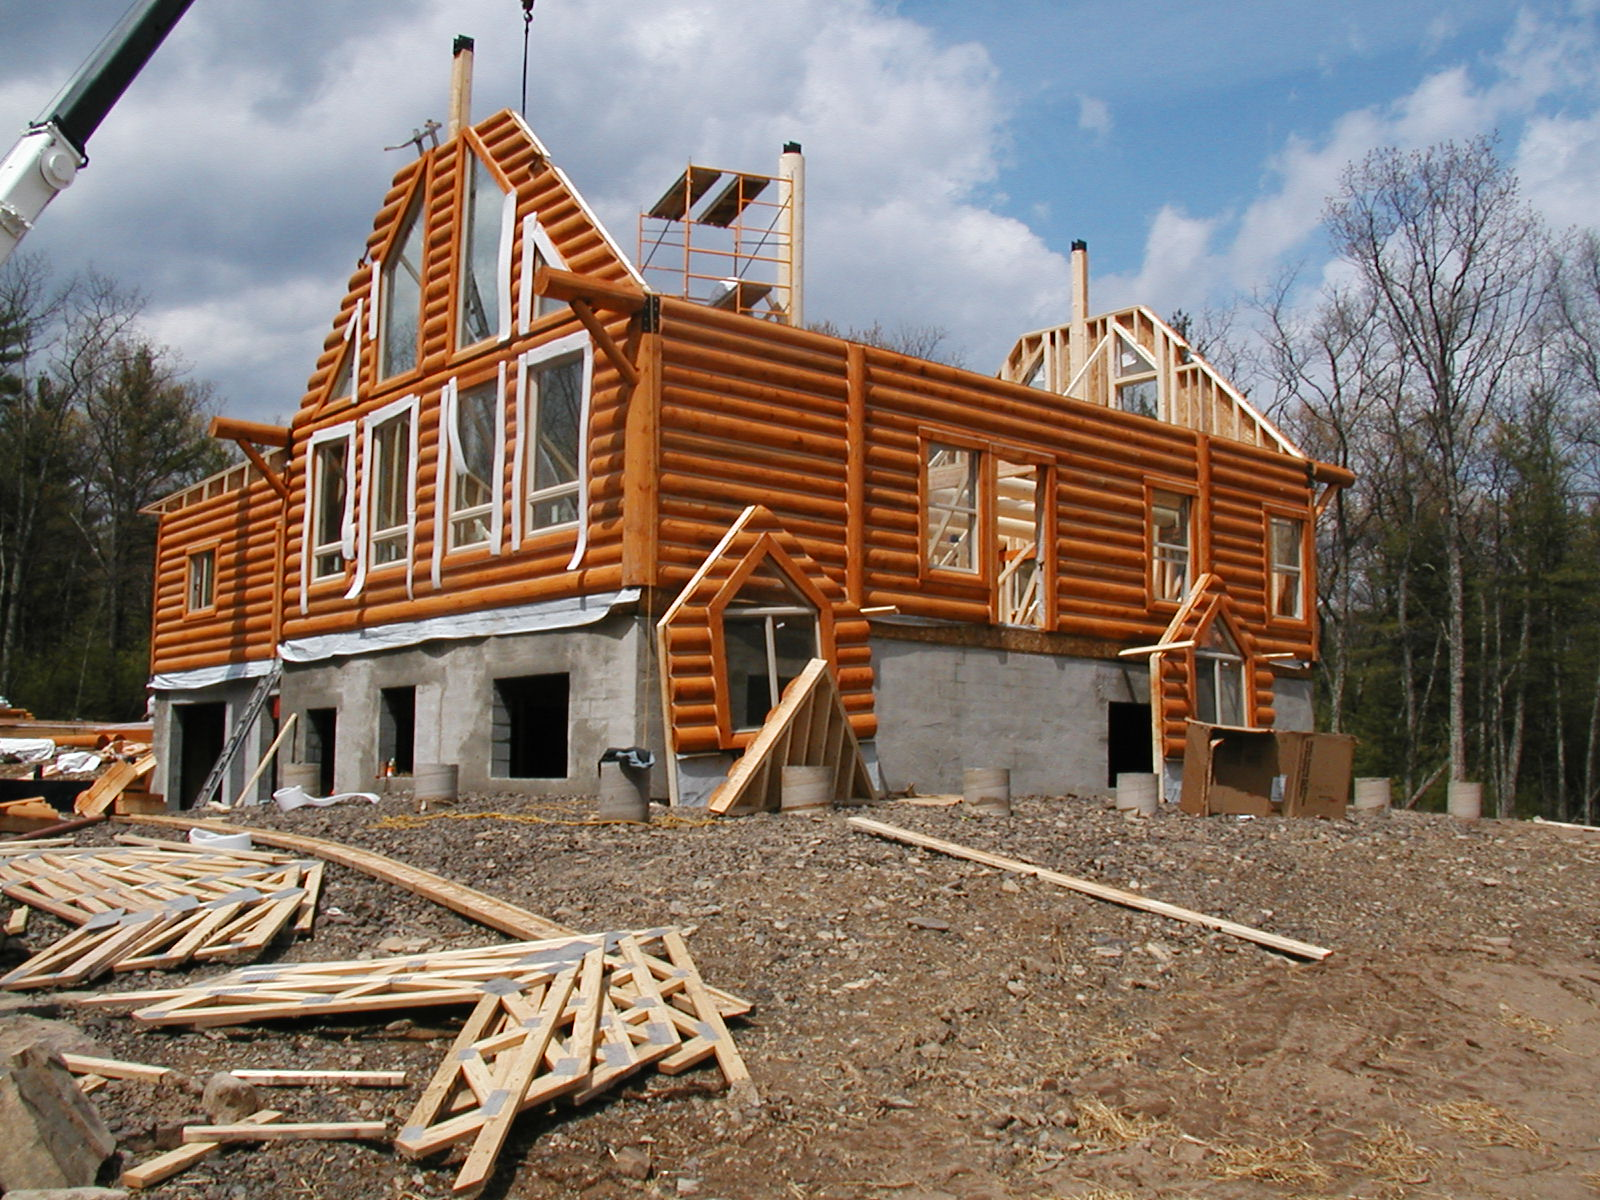 Reasons Why Log Cabins Have Become Very Popular